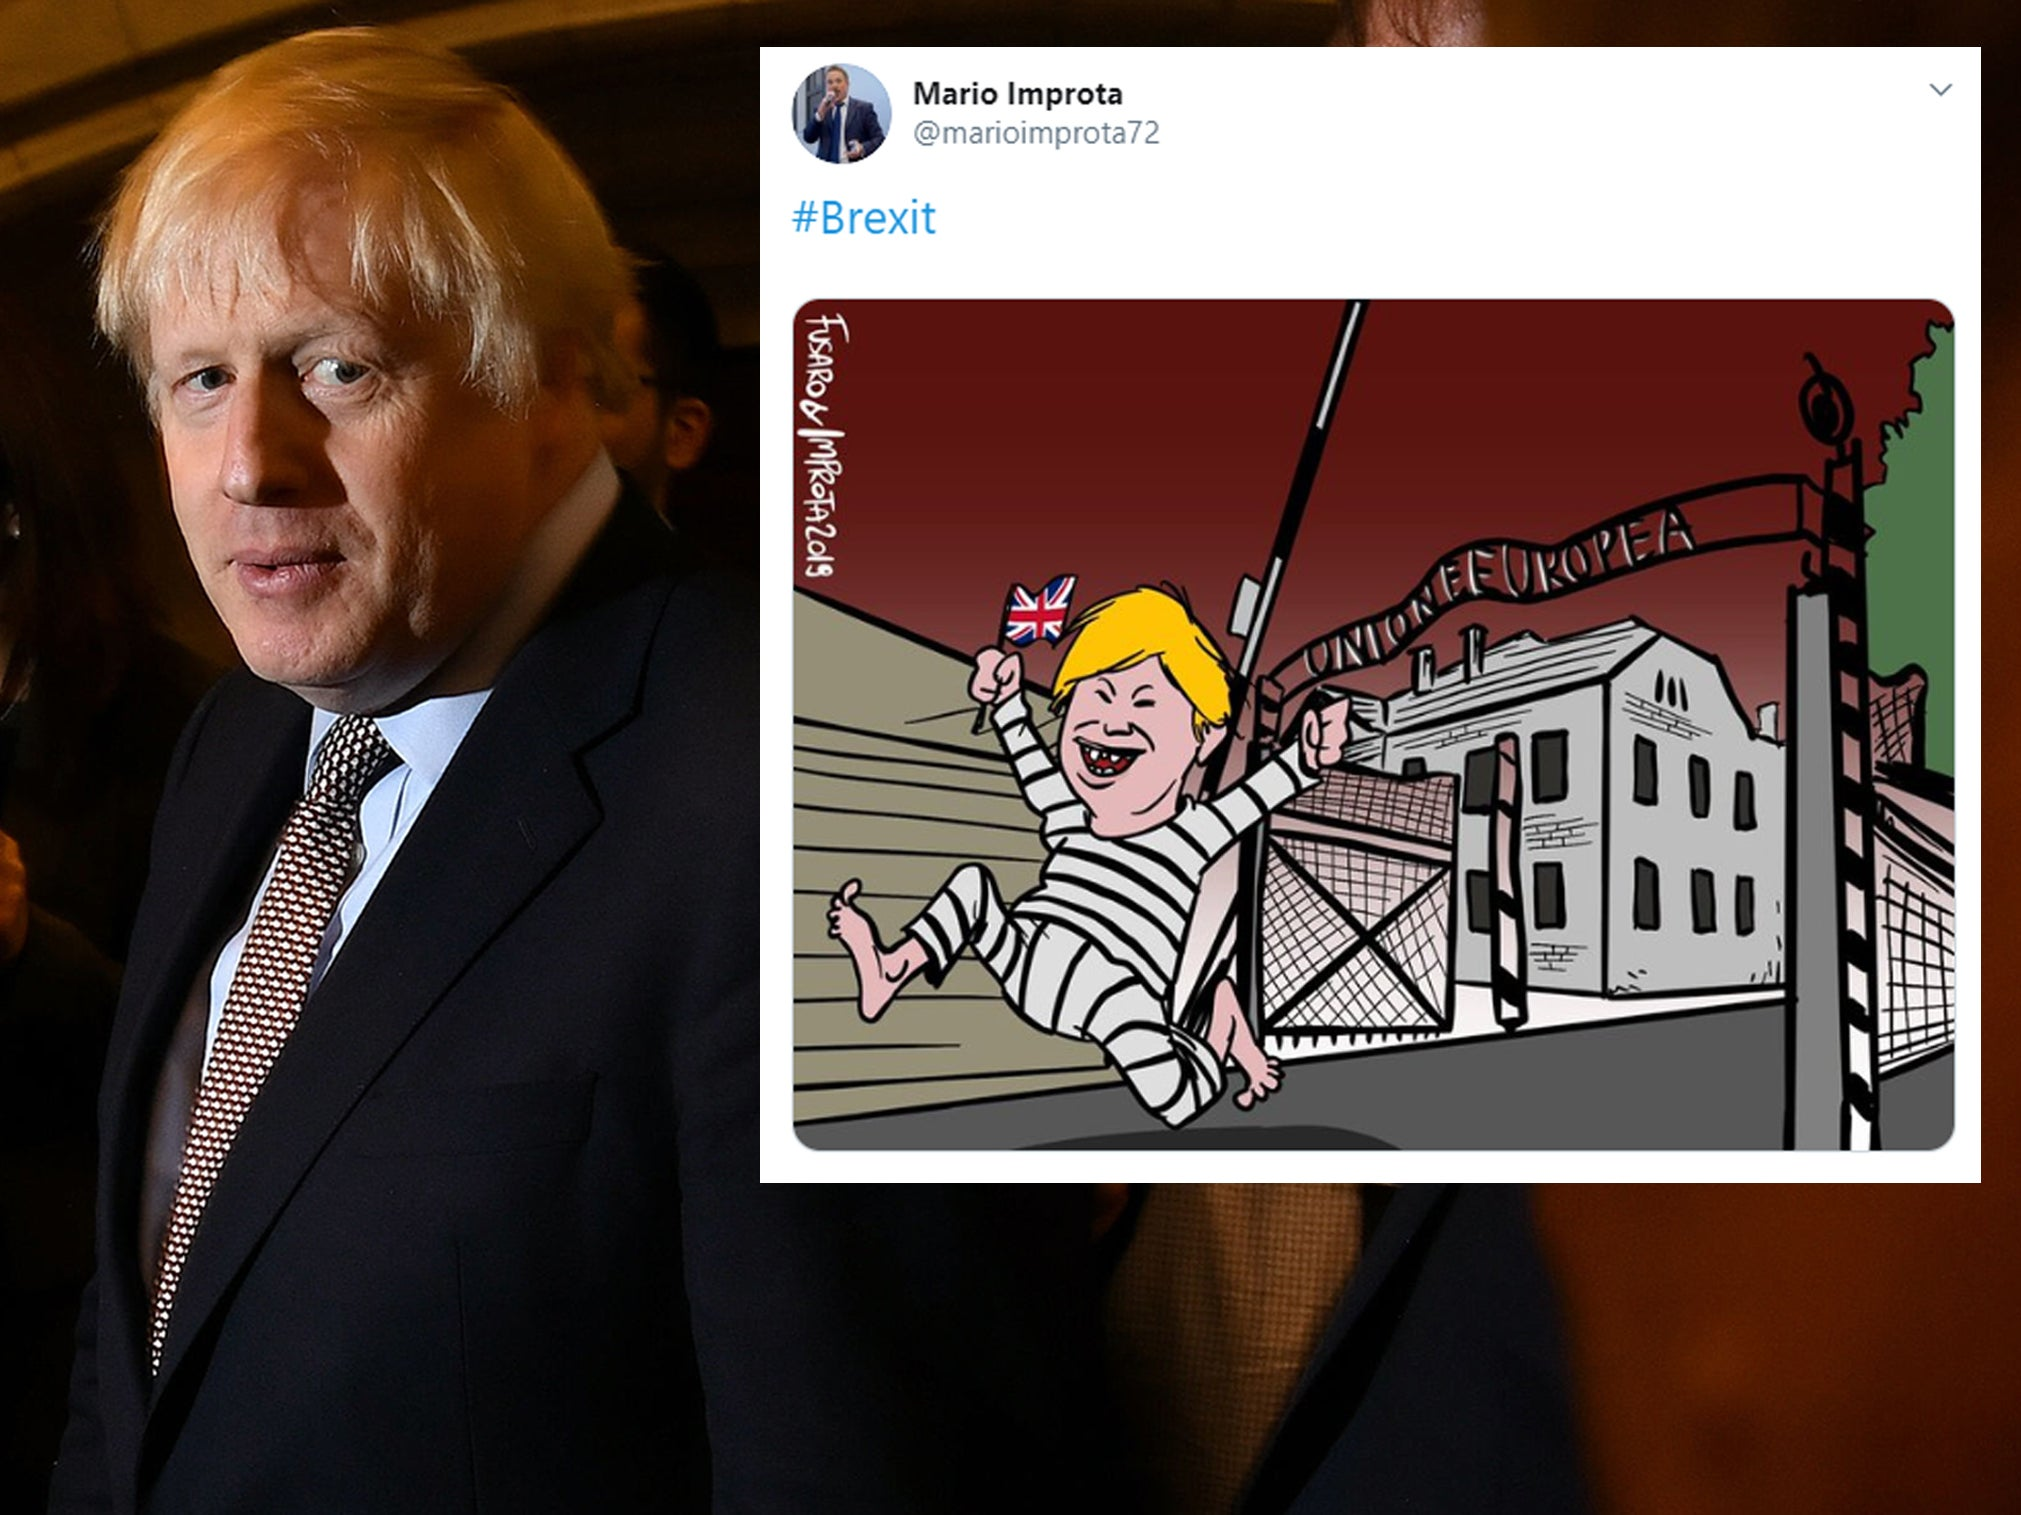 Italian cartoonist sparks outrage for depicting EU as Auschwitz and Boris Johnson as escaping prisoner